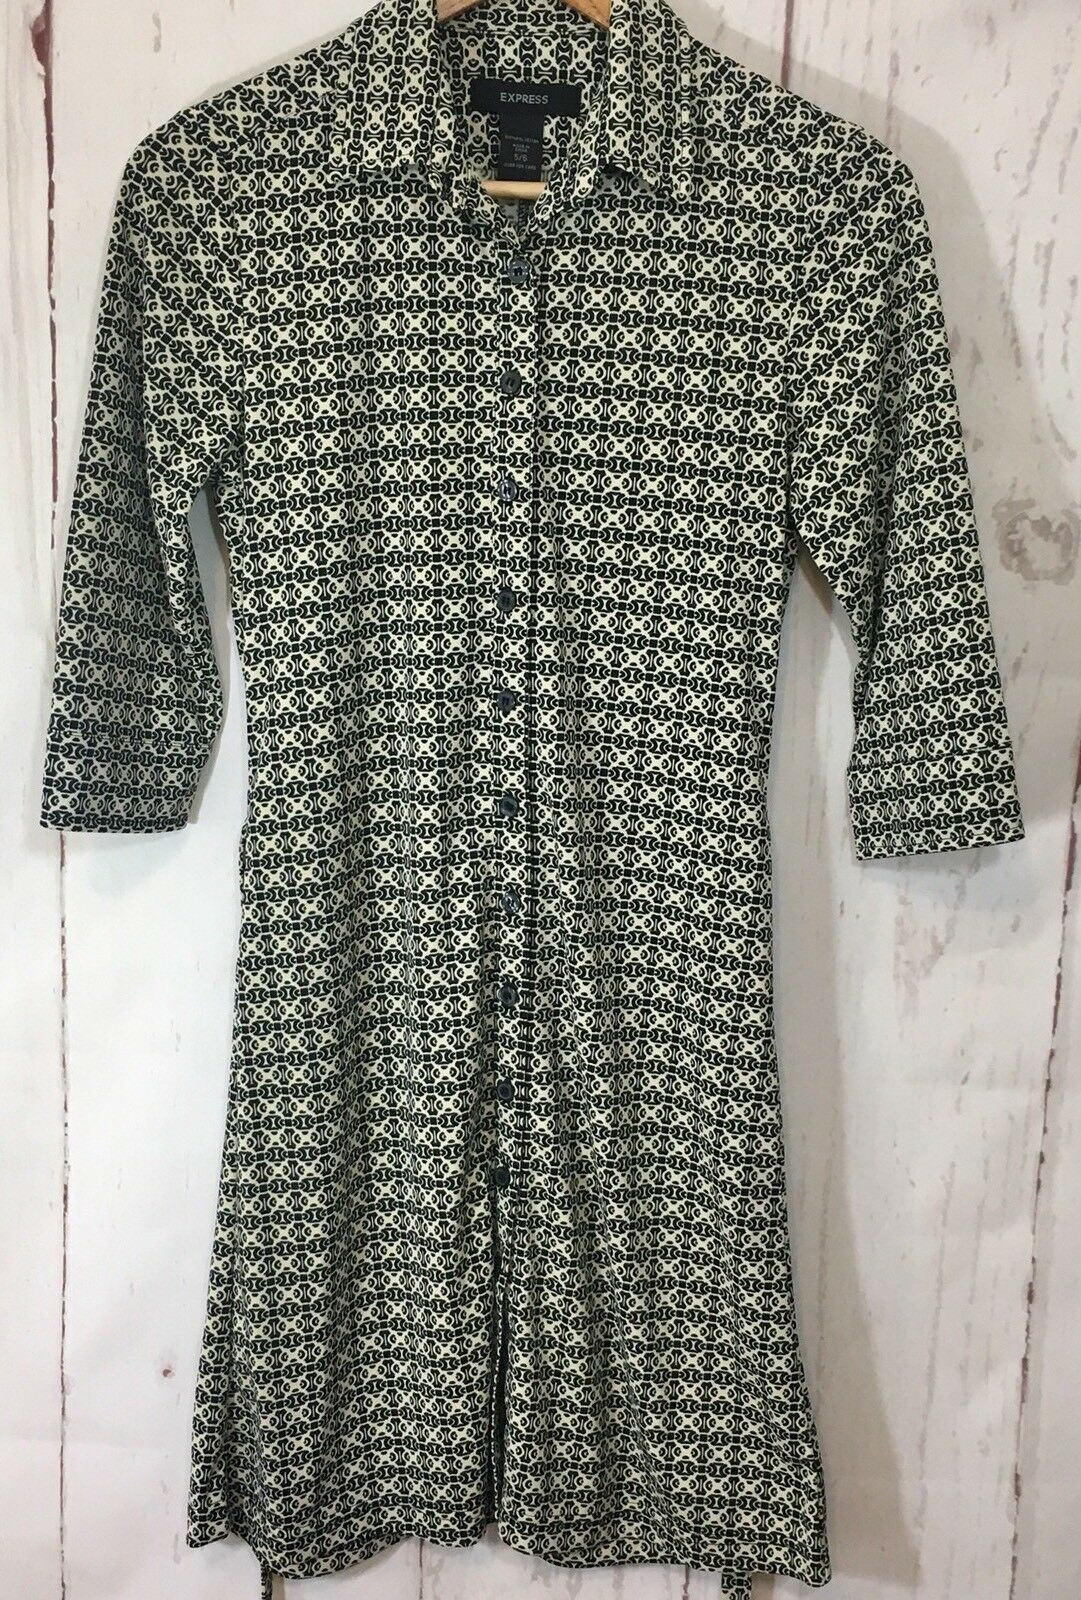 Express Dress Button Down Sz 5/6 3/4 Collared Belted 3/4 Sleeve Career image 2